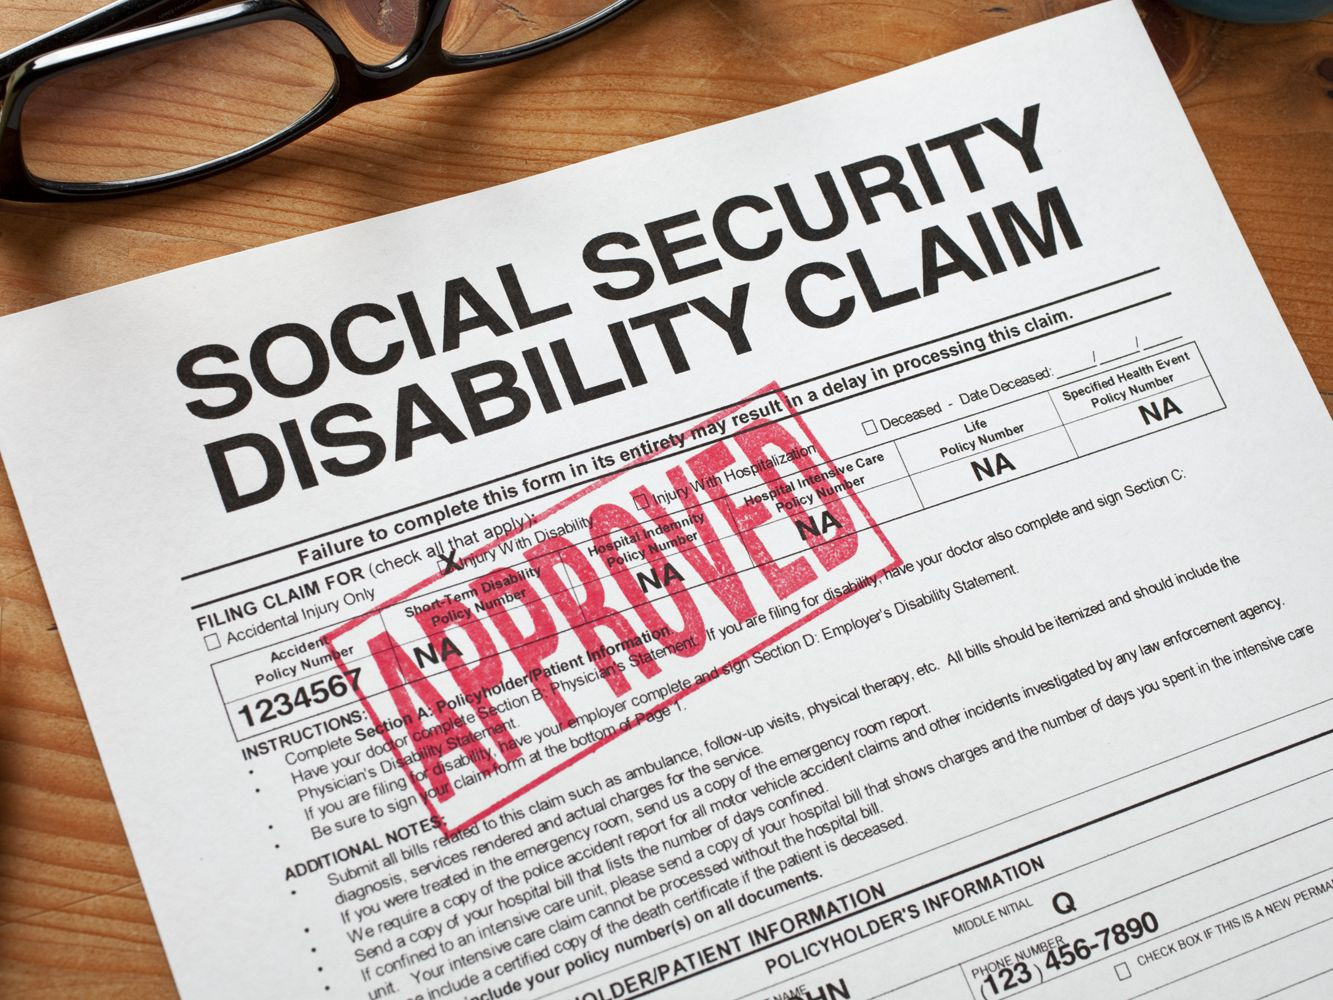 Social Security Disability Application form Simple How to Get Off social Security Disability